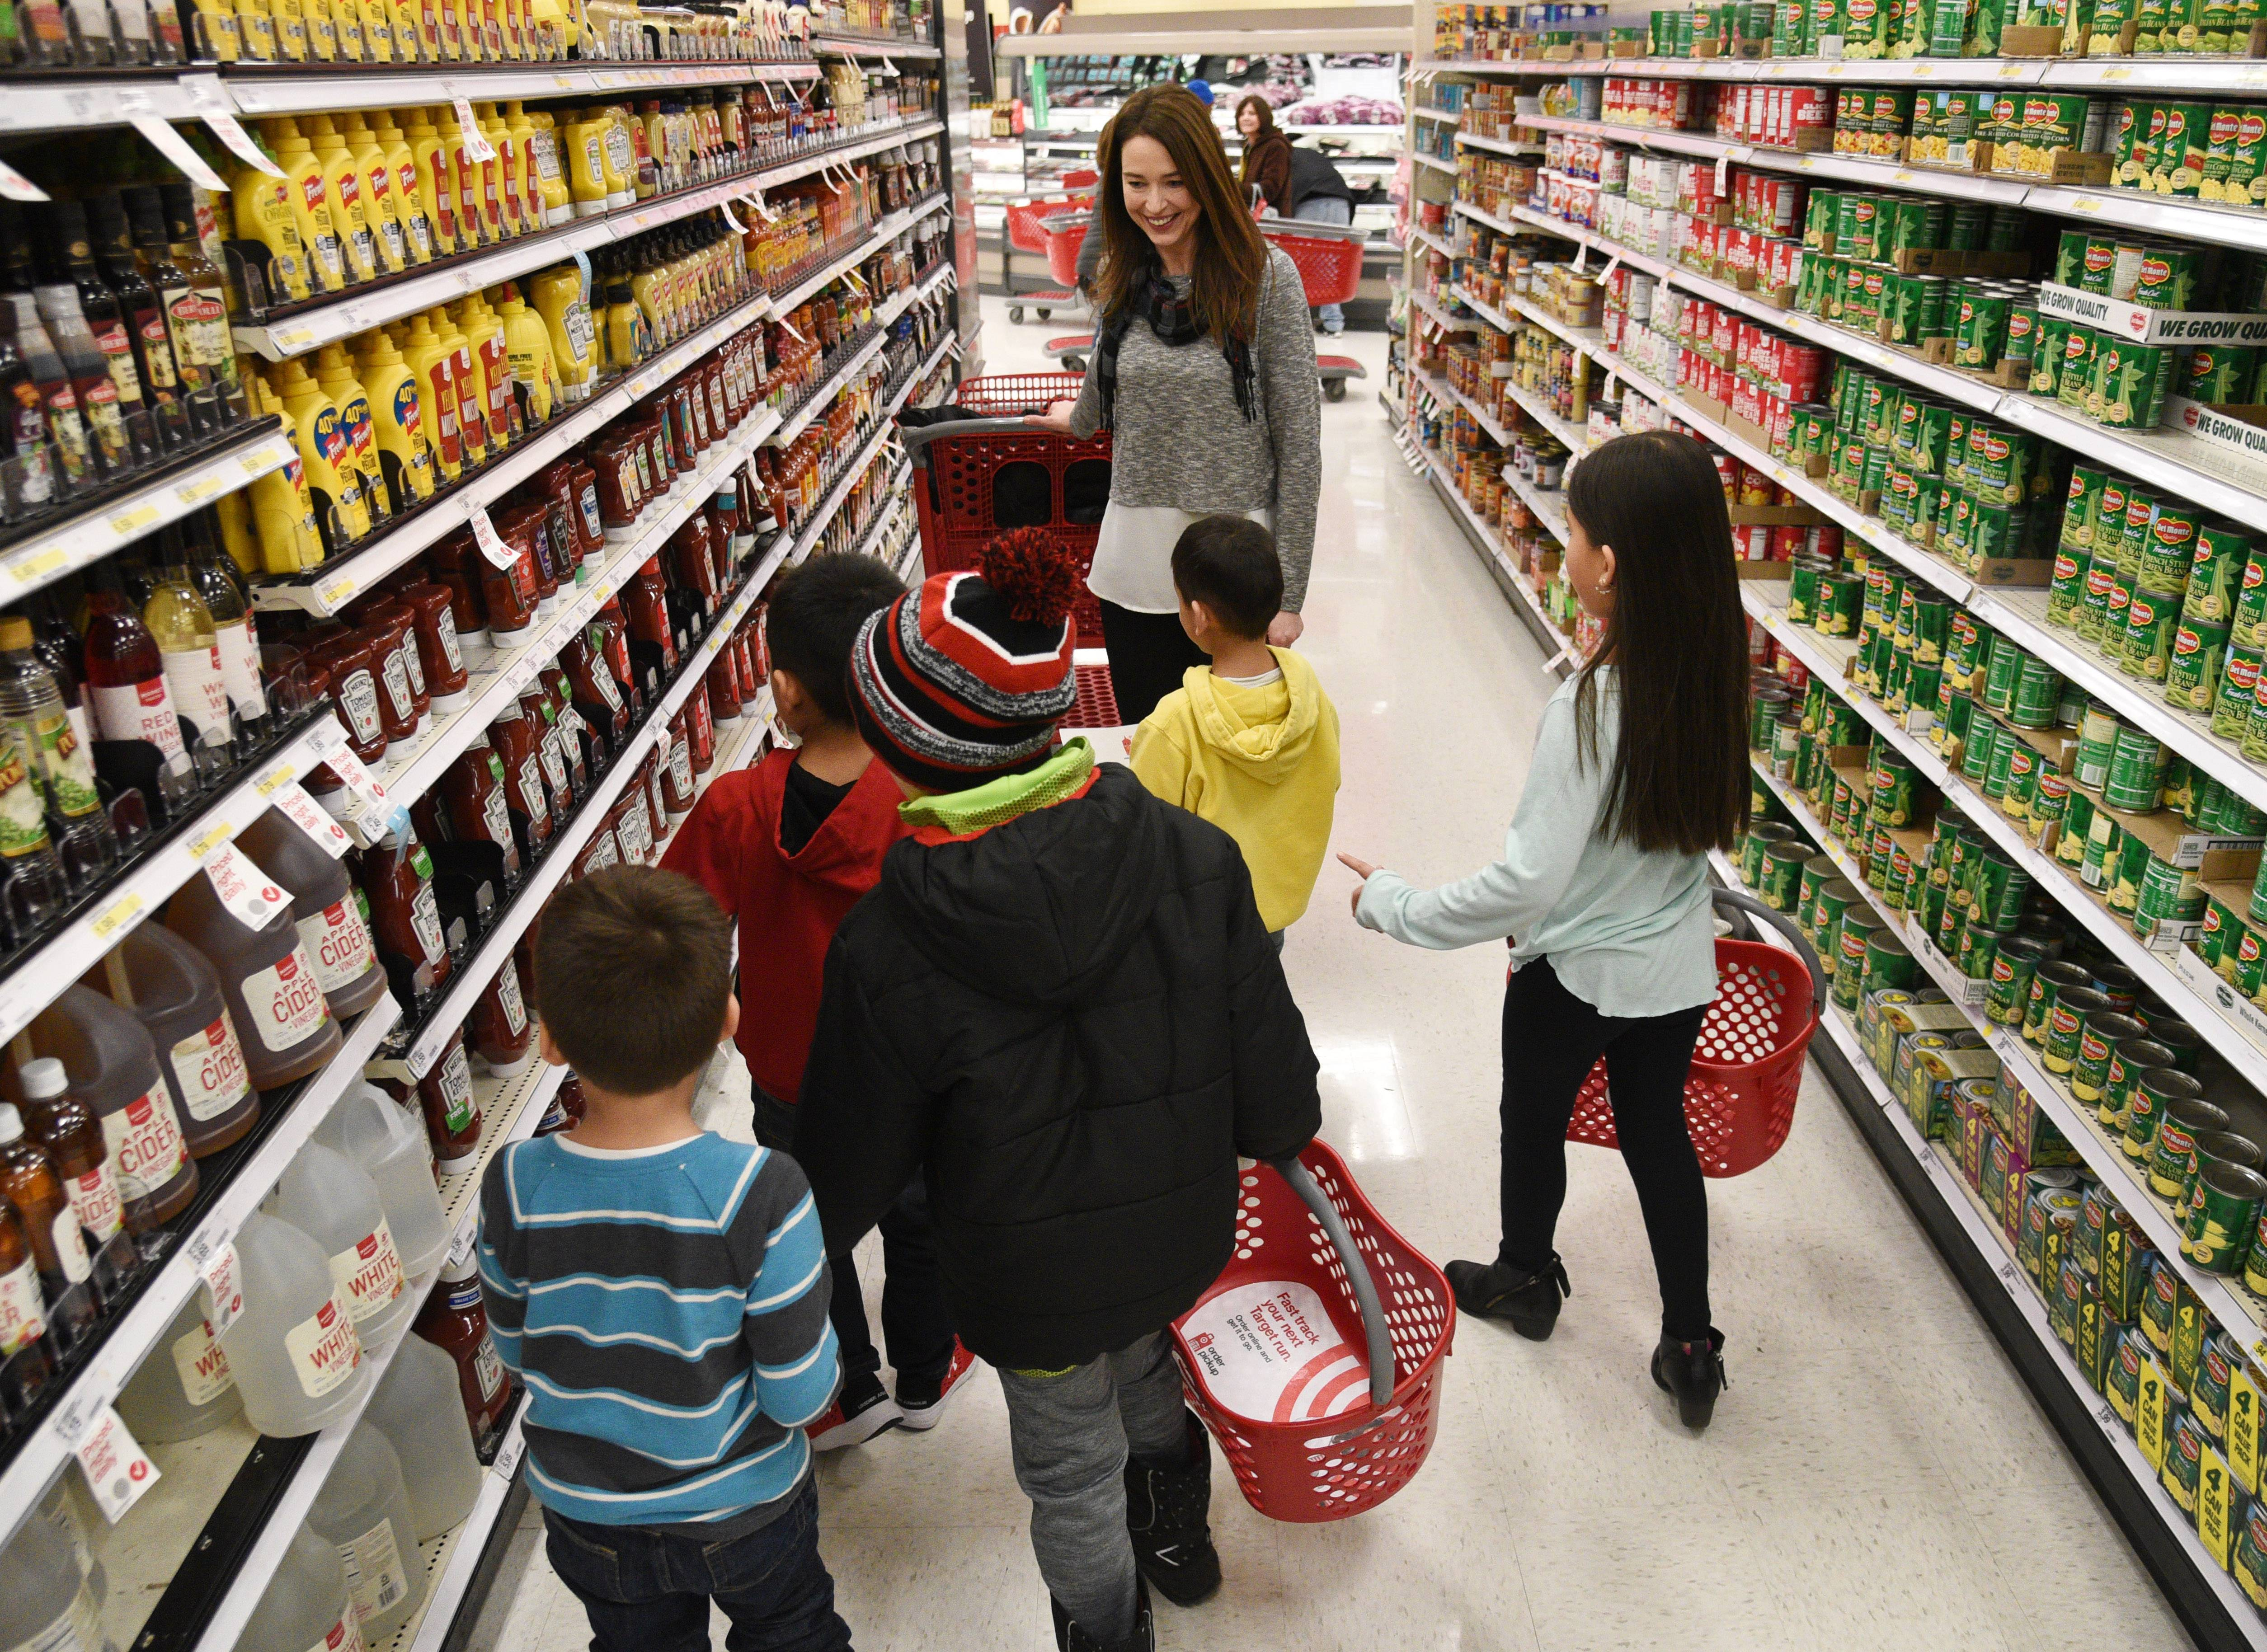 Fremont Elementary School kindergarten teacher Lisa Listi shops with a groups of District 79 students Wednesday at the Mundelein Target store. Teachers, students and parents are teaming up to buy items for the Fremont Township Food Pantry.